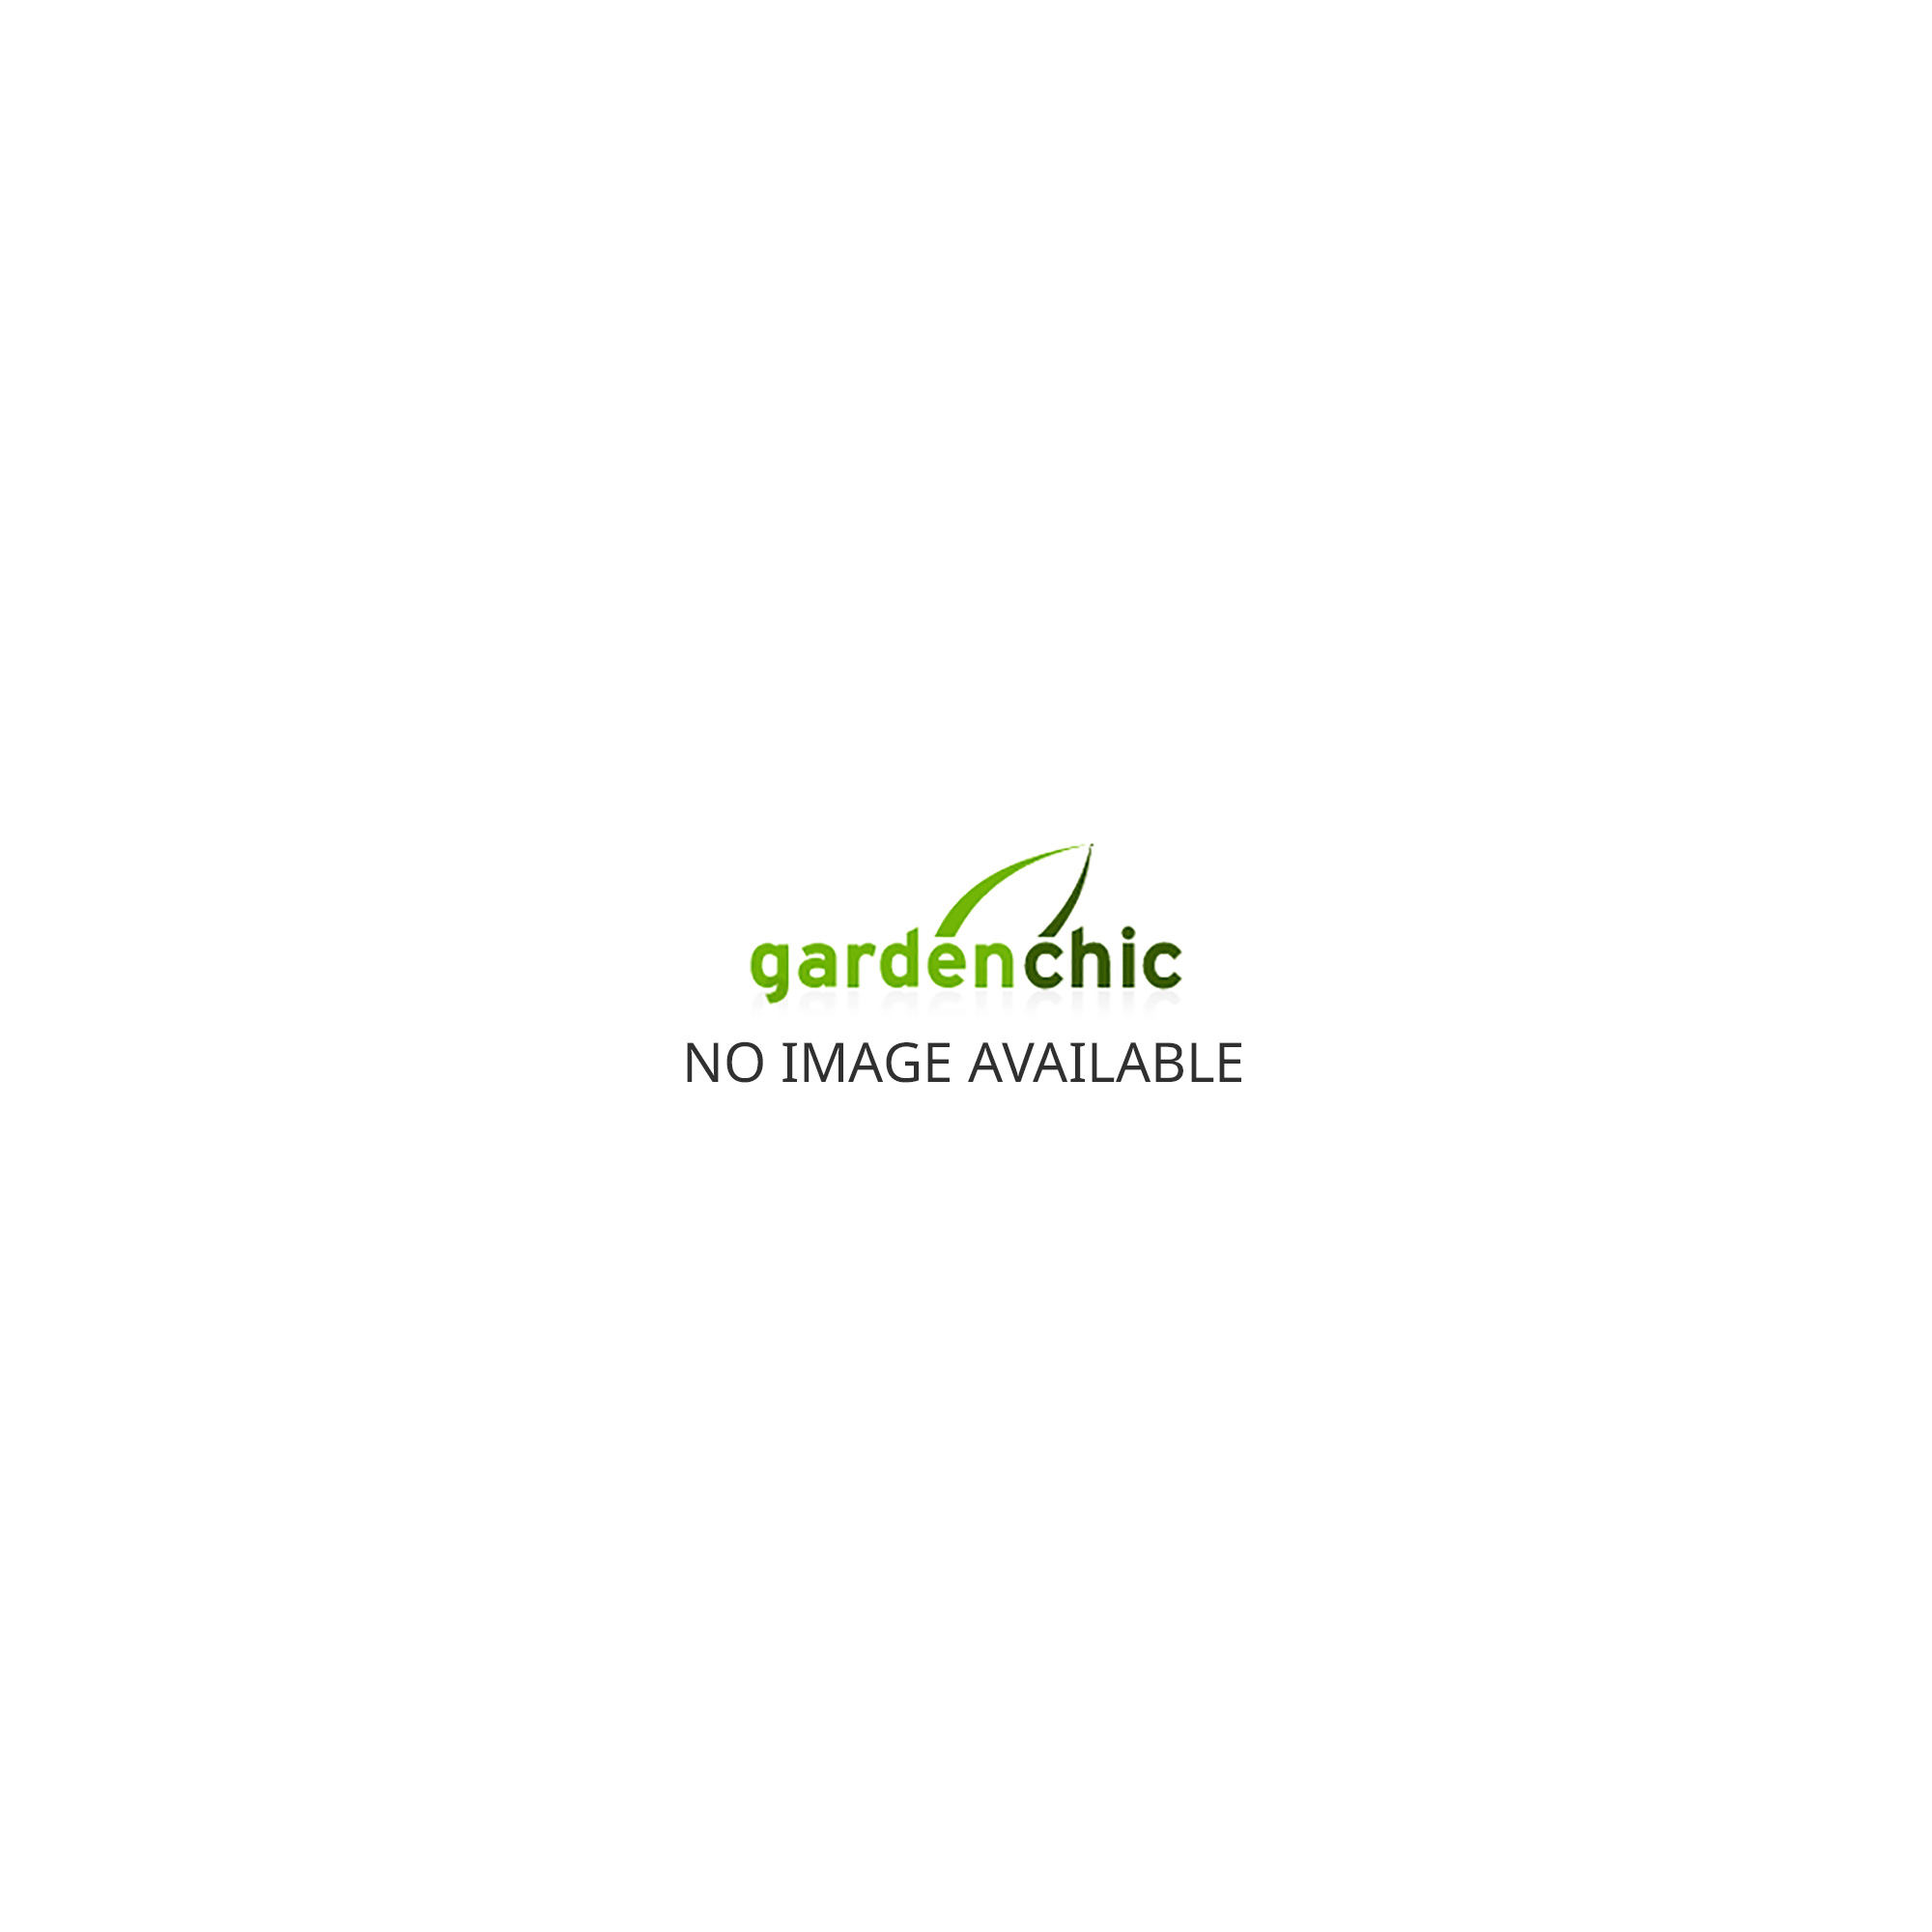 Compact Greenhouse 7ft x 9ft (Aluminium) - FREE Staging throughout February 2018